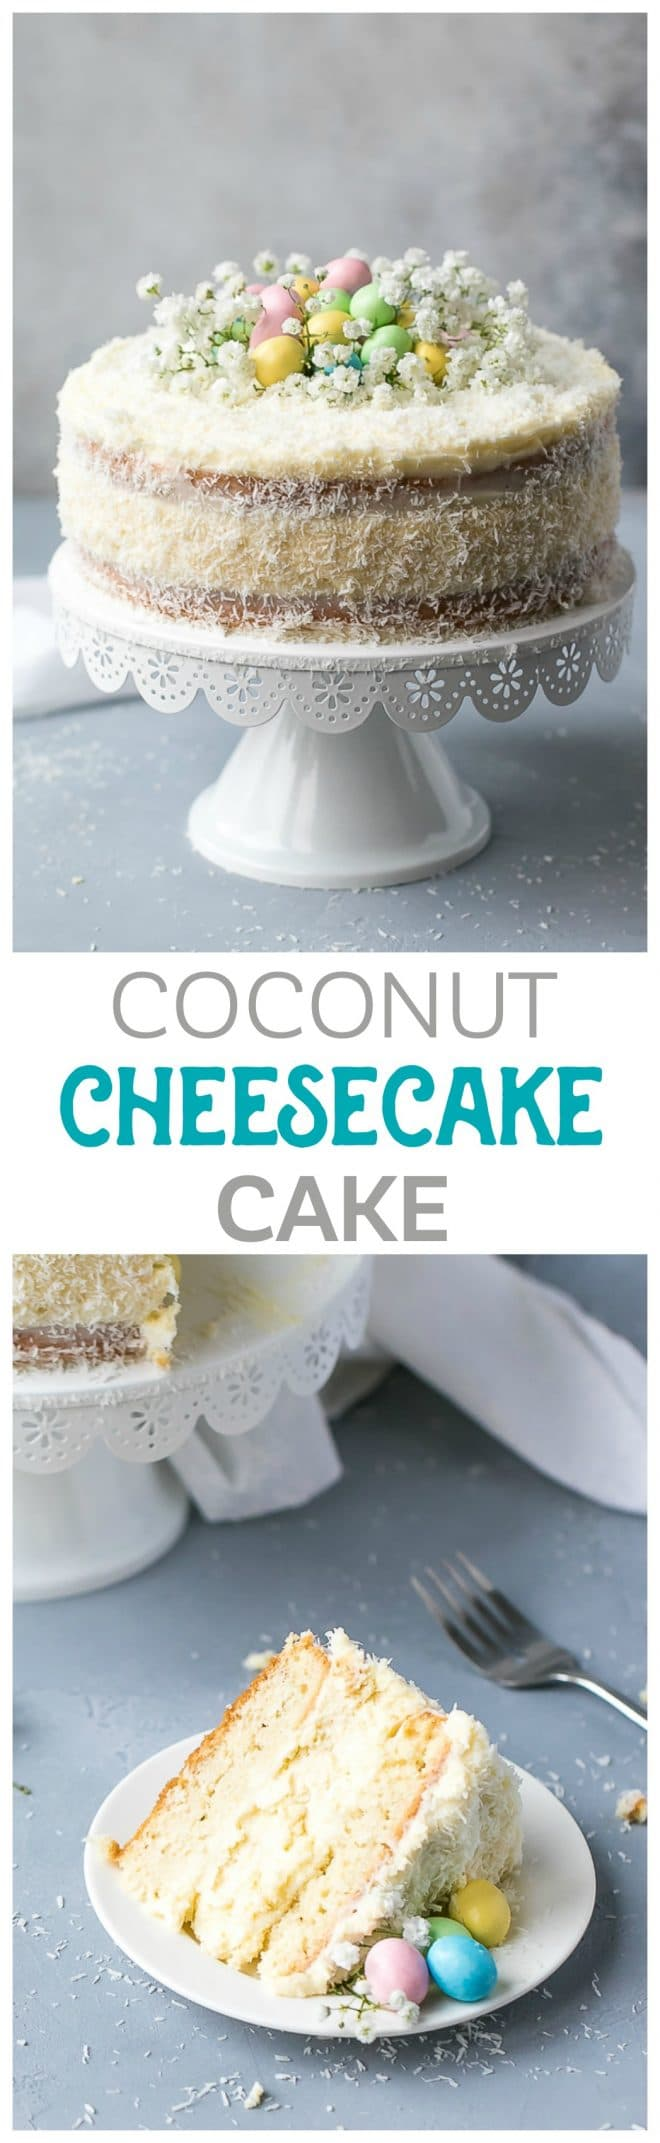 Calories In Coconut Cake With Icing